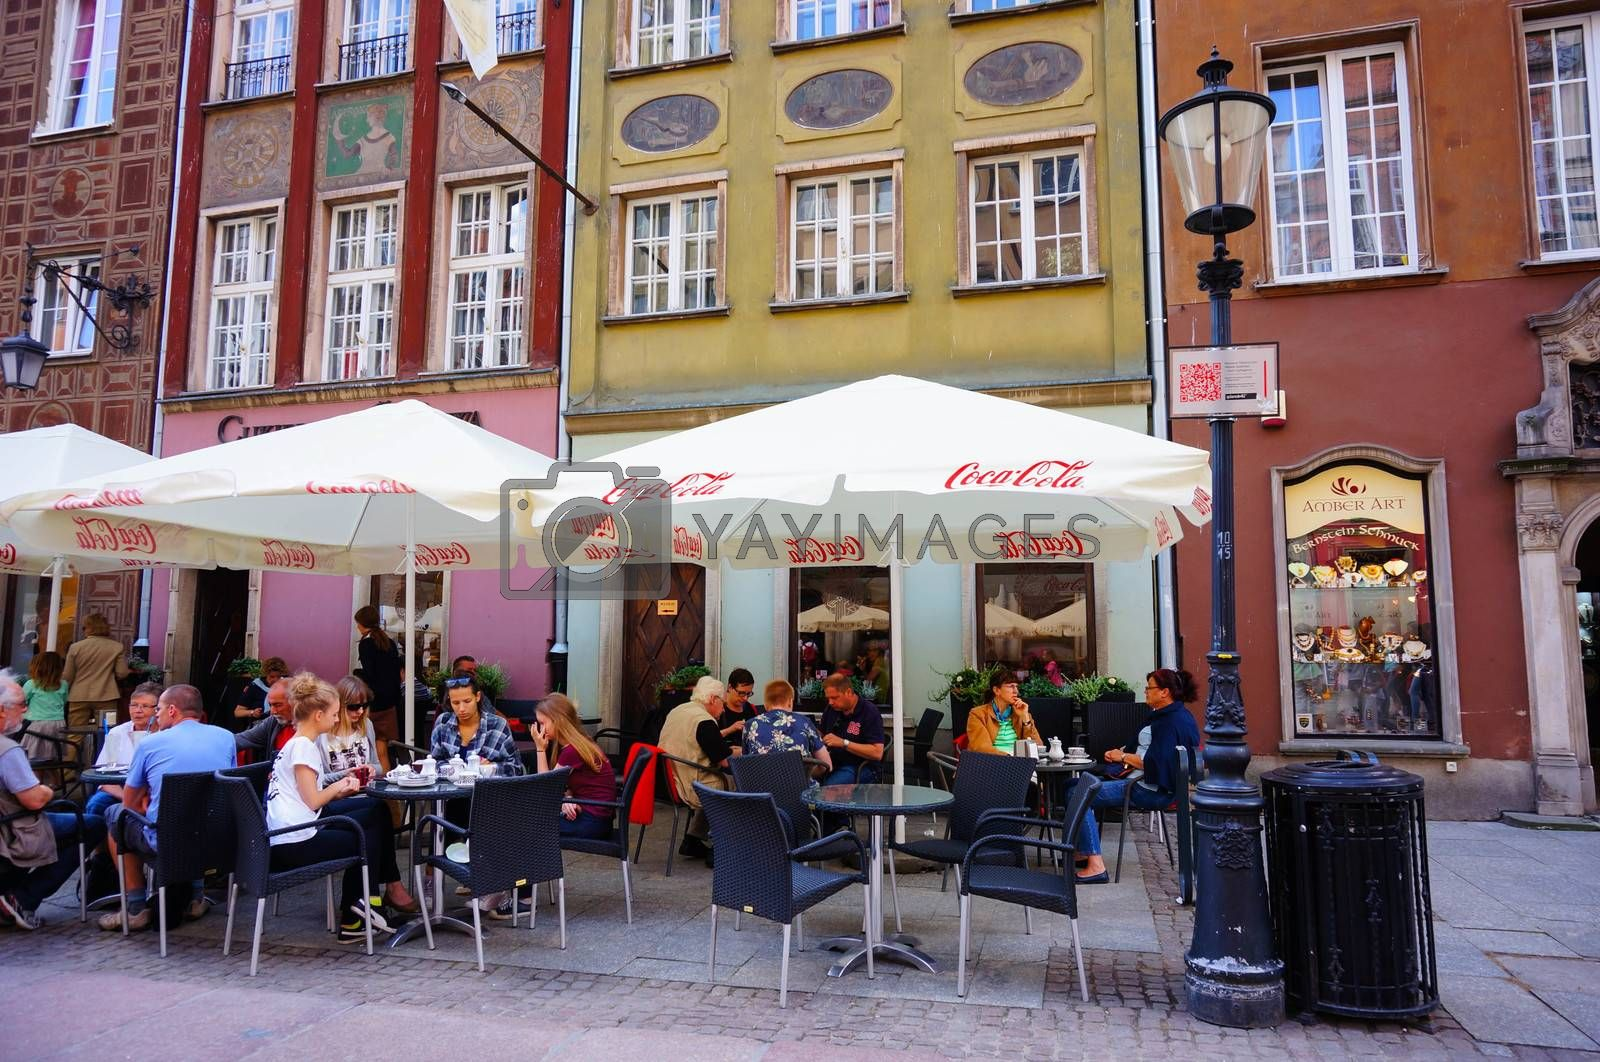 GDANSK, POLAND - JULY 29, 2015: People sitting at a bar in the city center